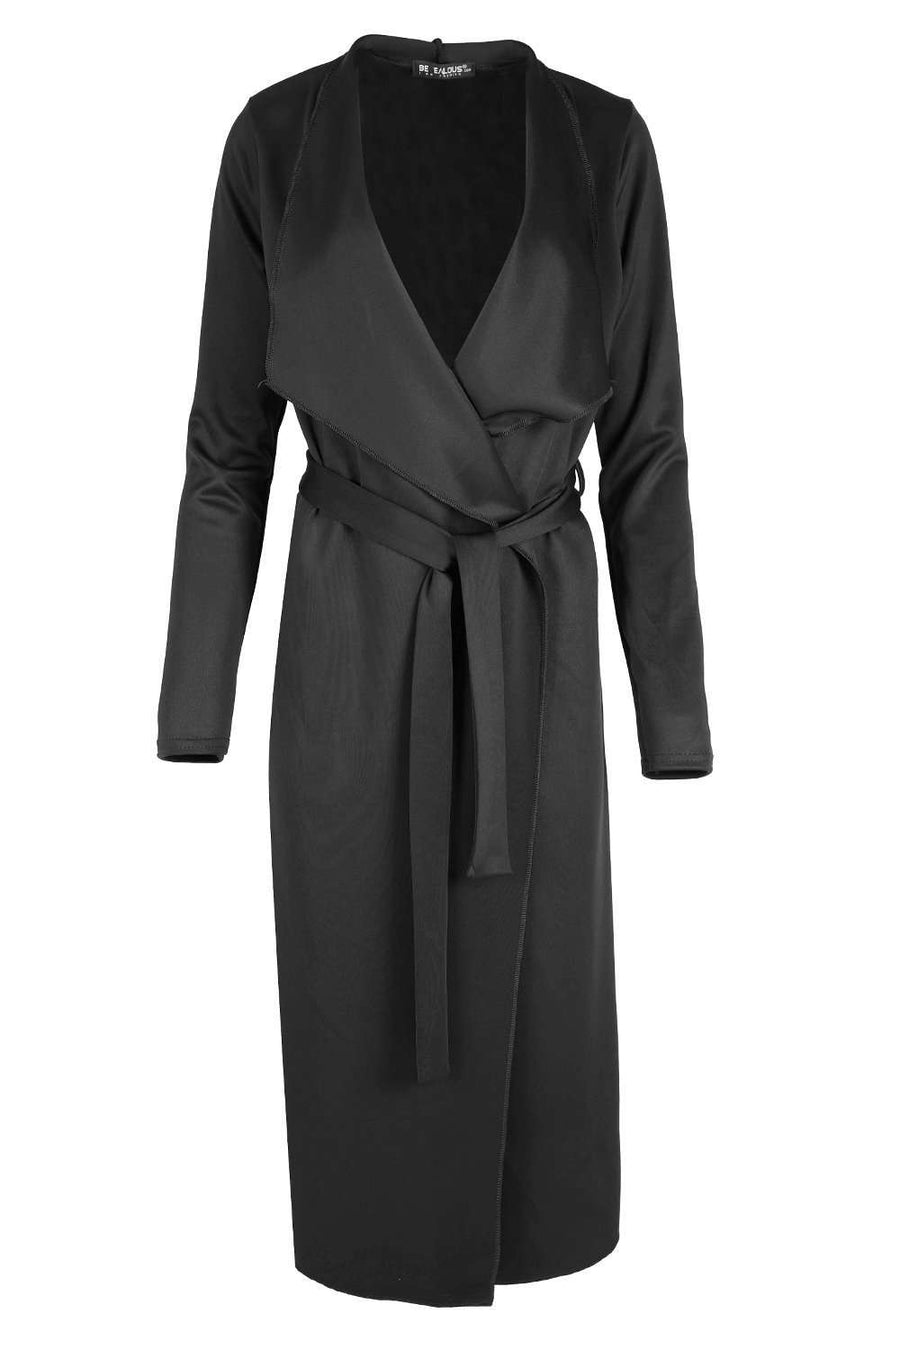 Vae Long Sleeve Waterfall Midi Duster Jacket - bejealous-com